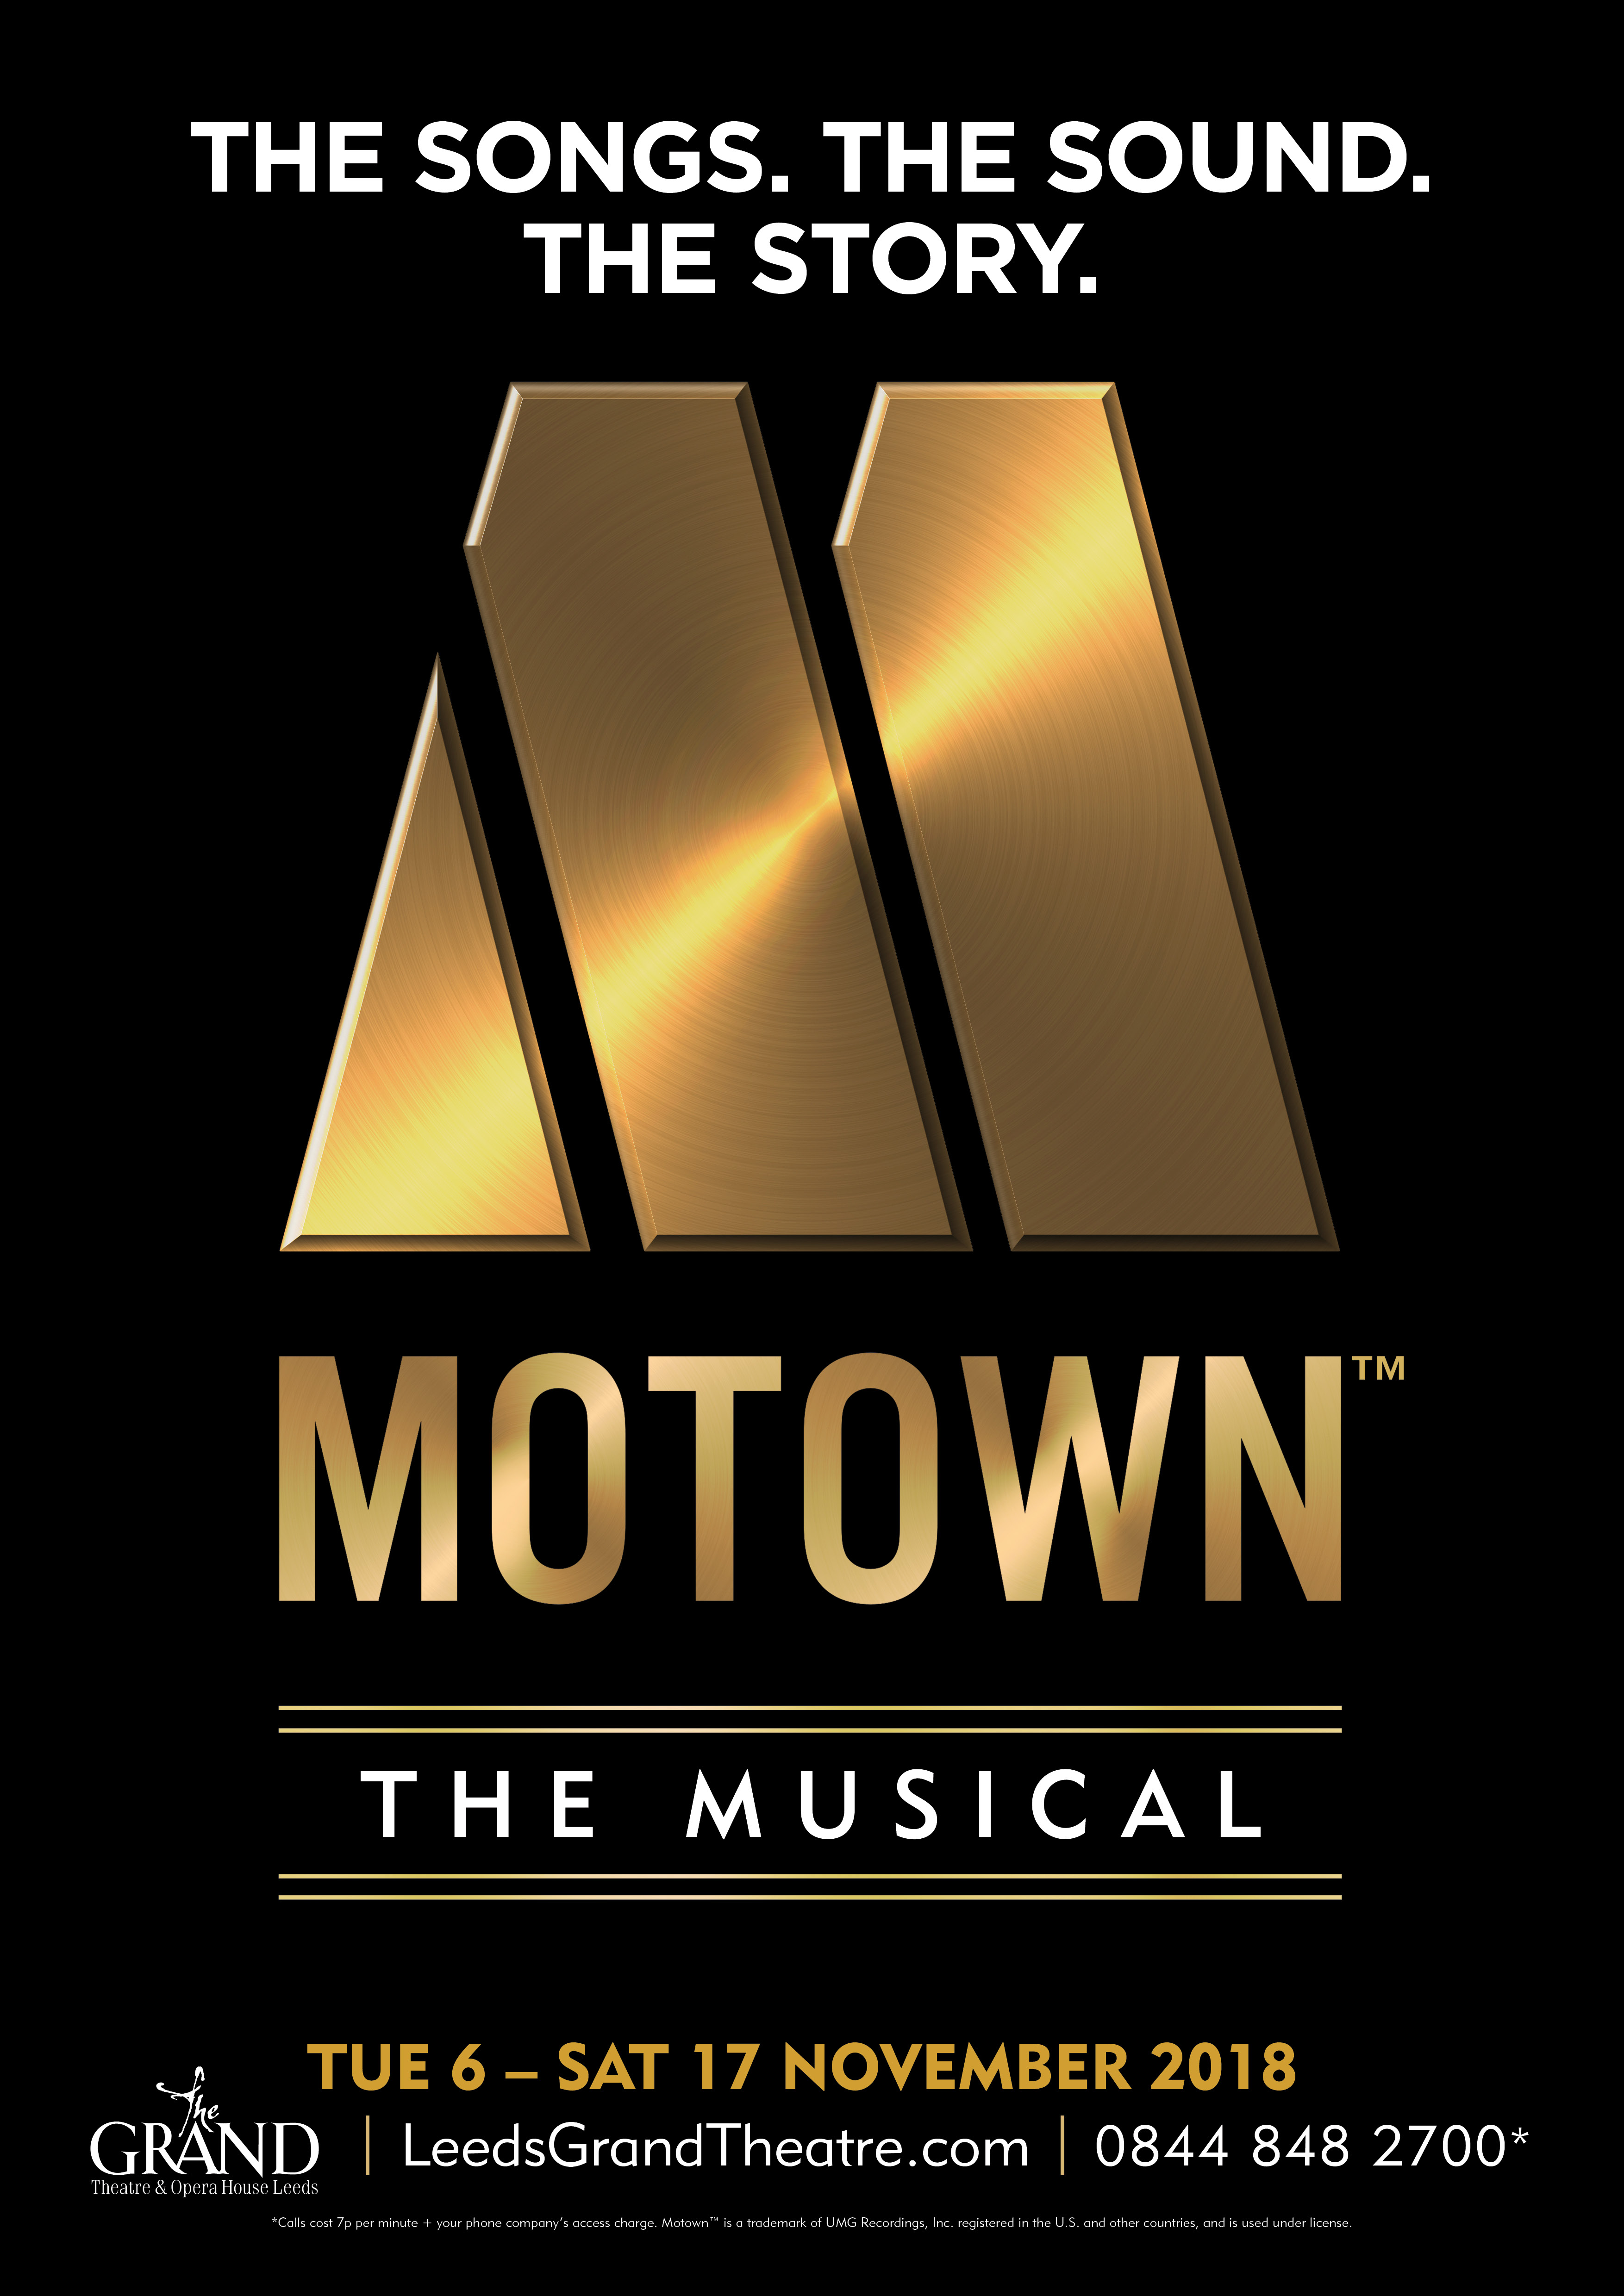 Motown Poster Show Image